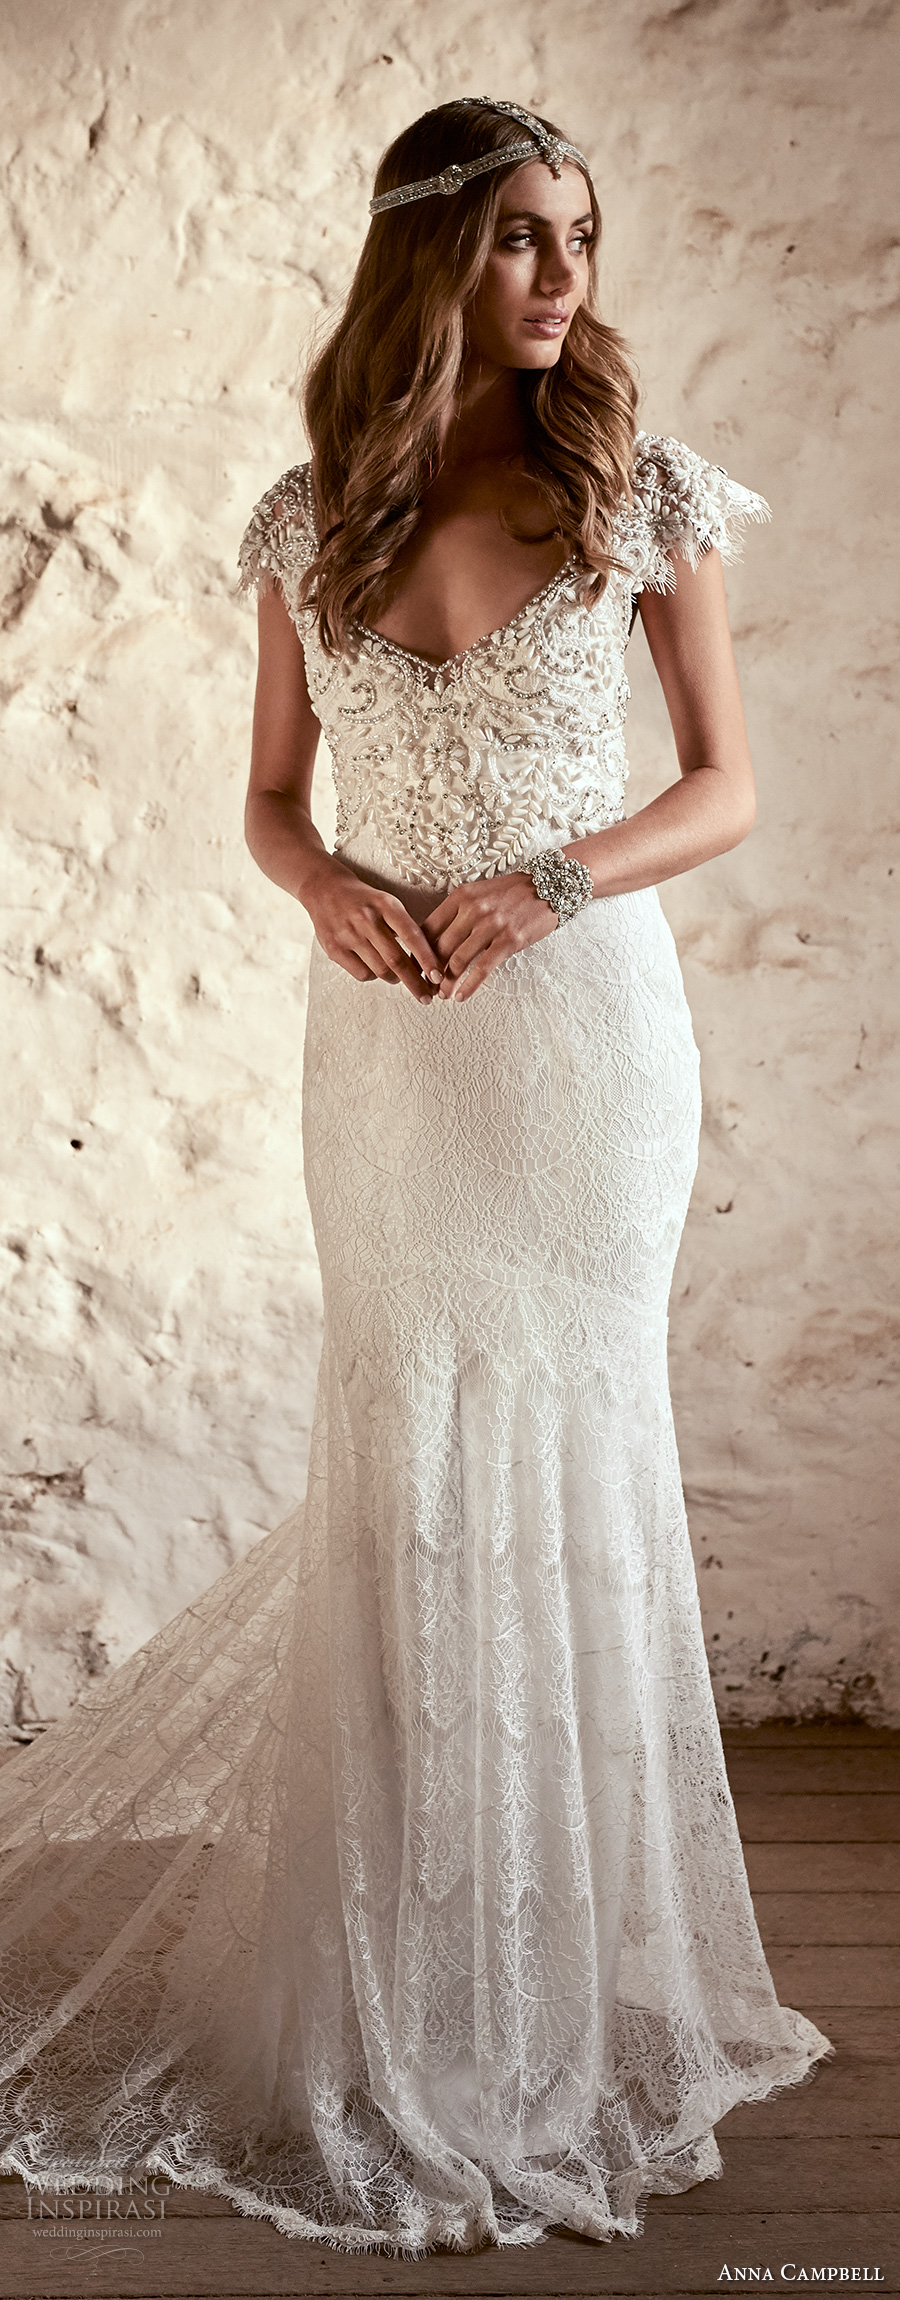 anna campbell 2018 bridal butterfly sleeves scoop neckline heavily beaded embellished bodice romantic elegant fit and flare wedding dress open v back short train (6) lv